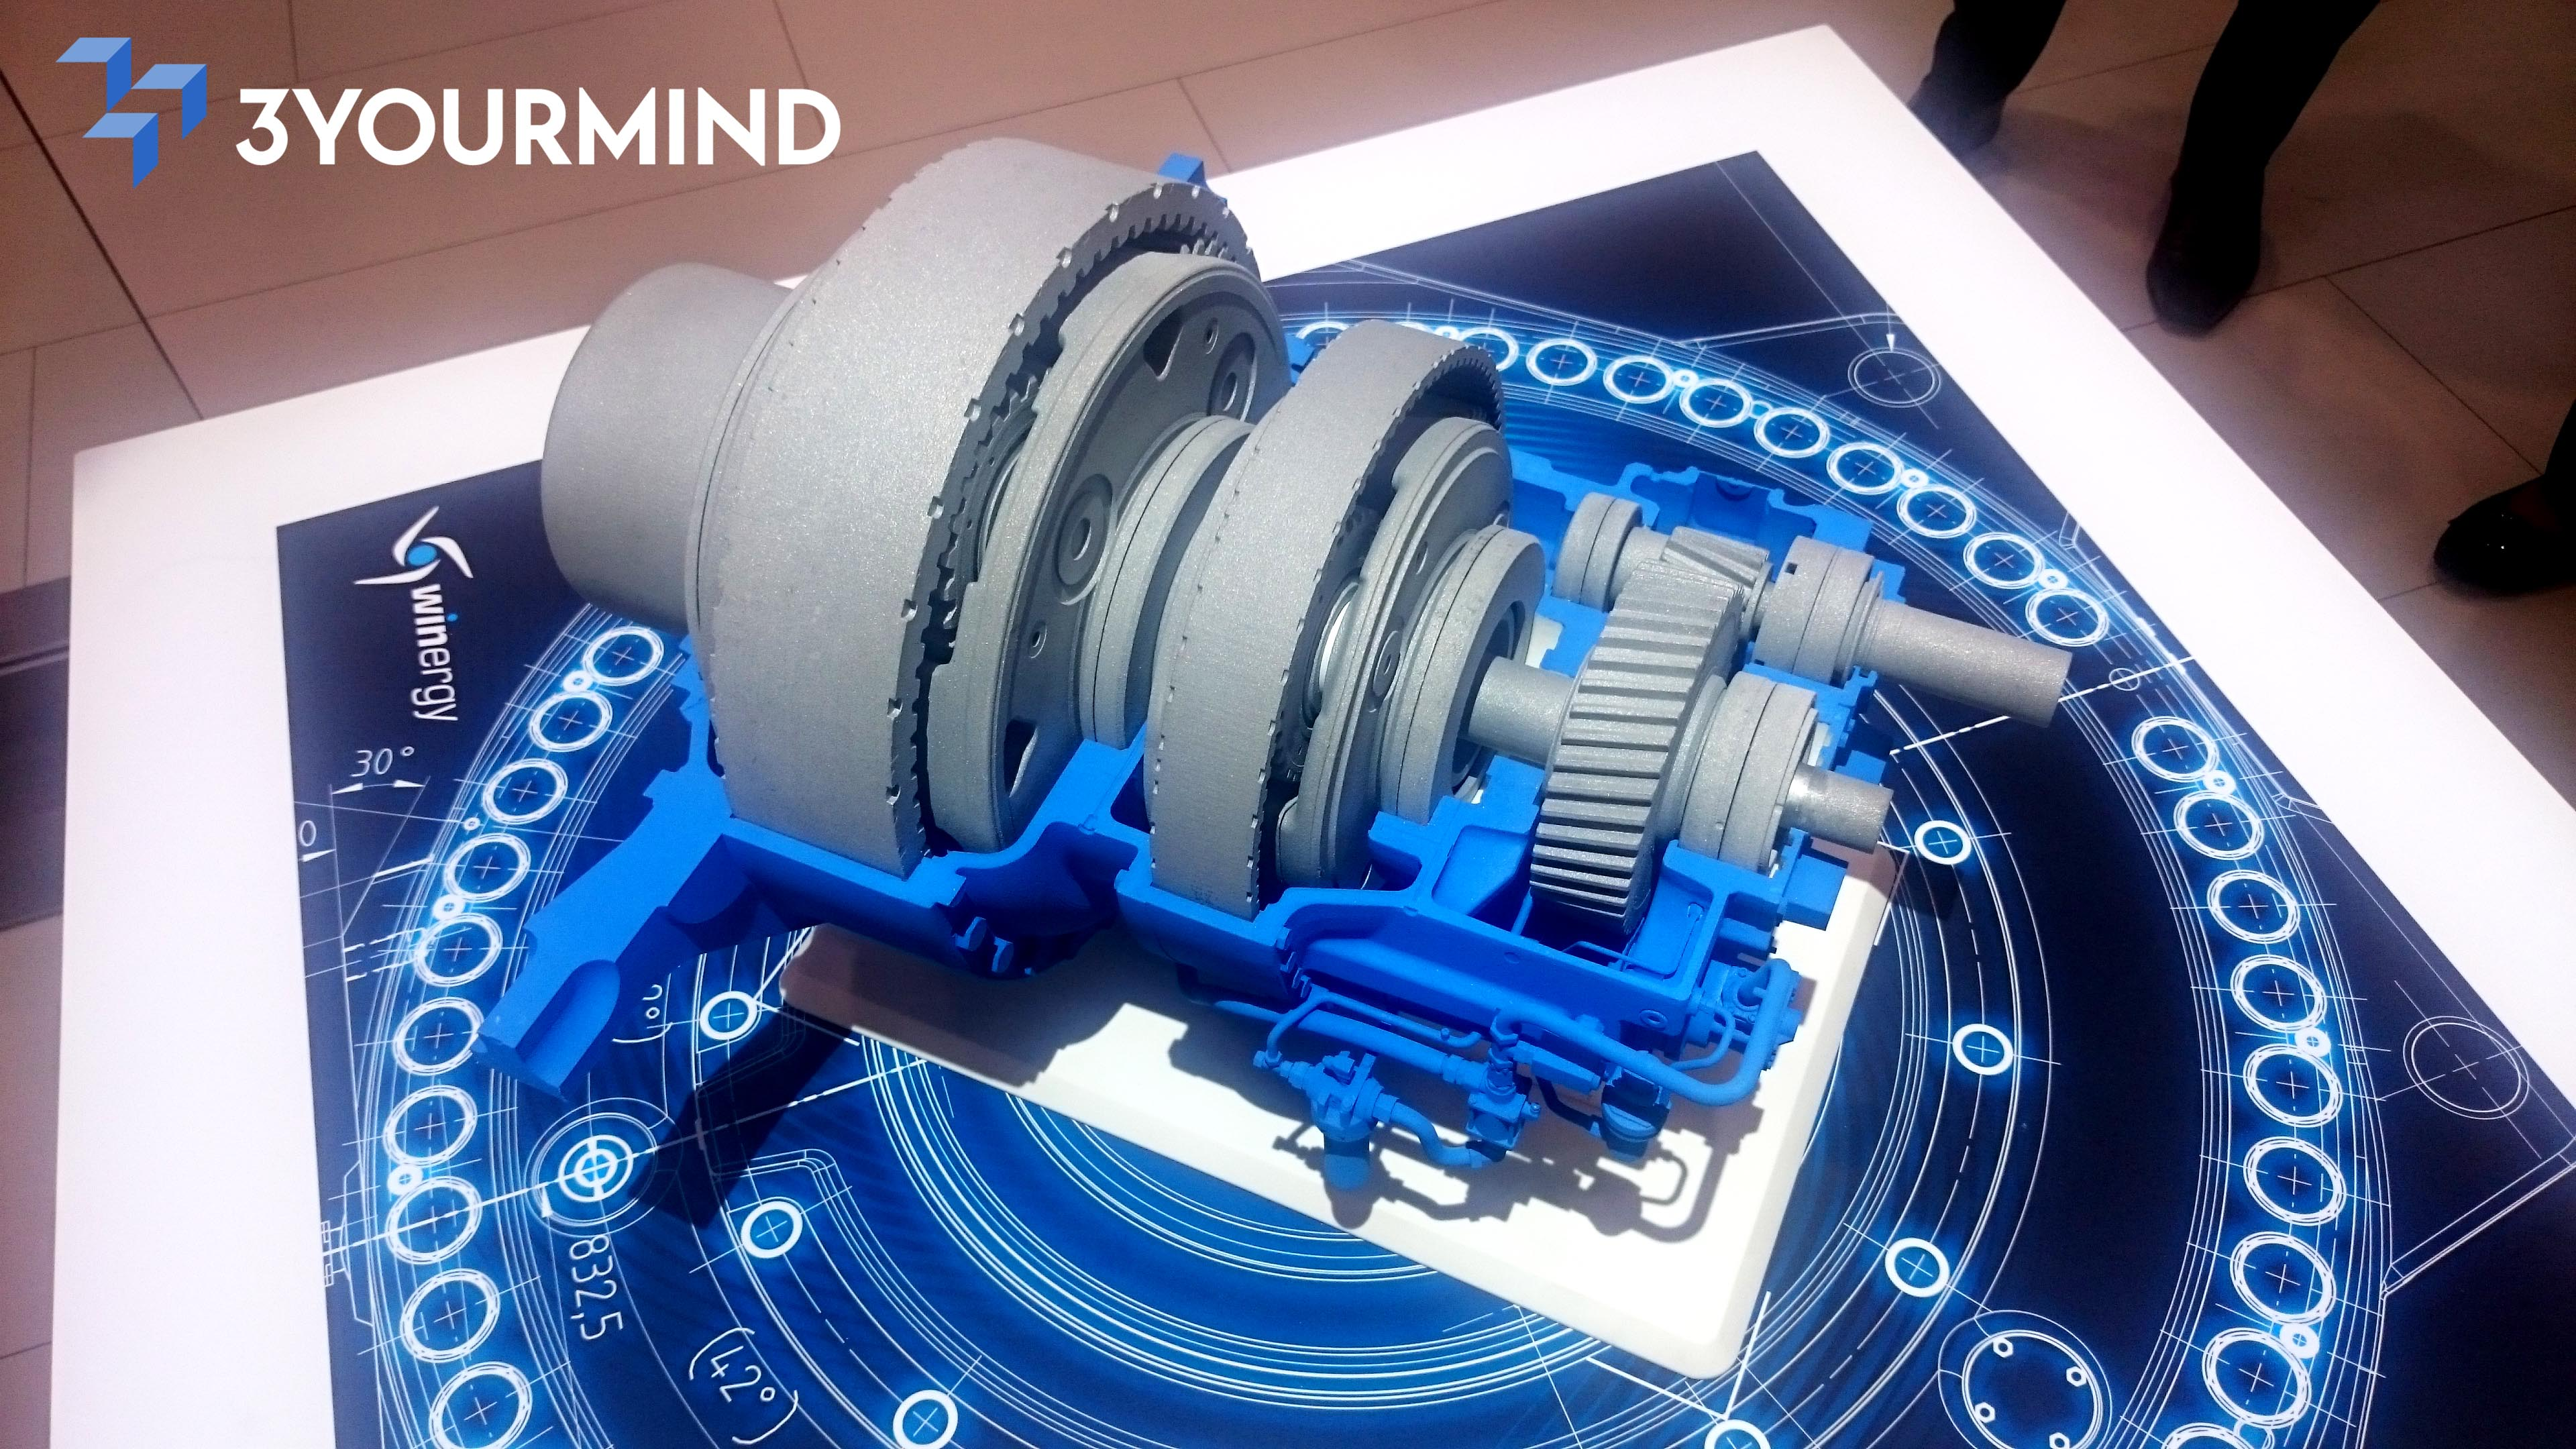 3D_Printed_Engine_WindTurbine_Winergy_Img2c.jpg